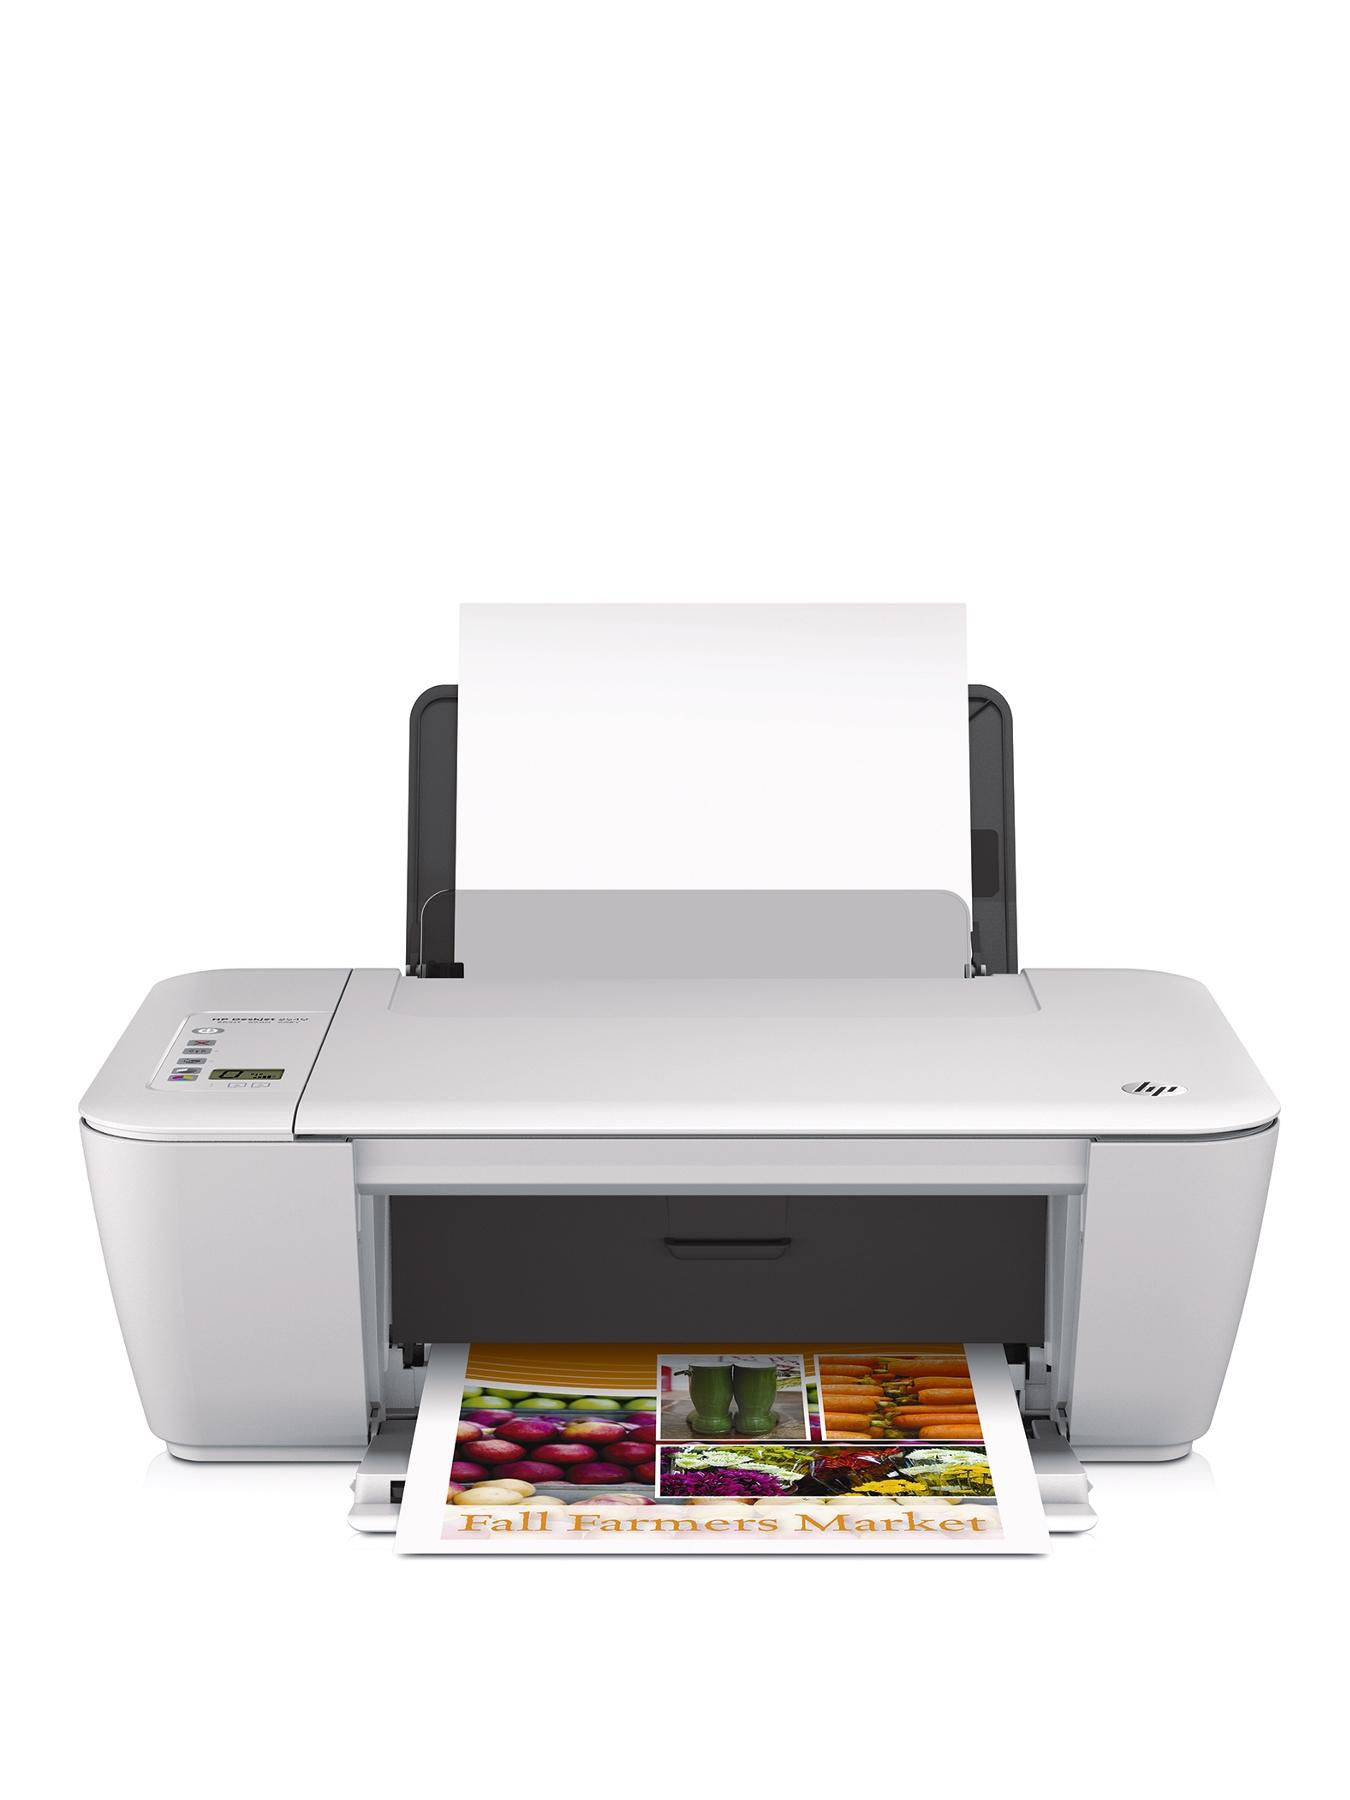 Deskjet 2540 All-in-One Printer